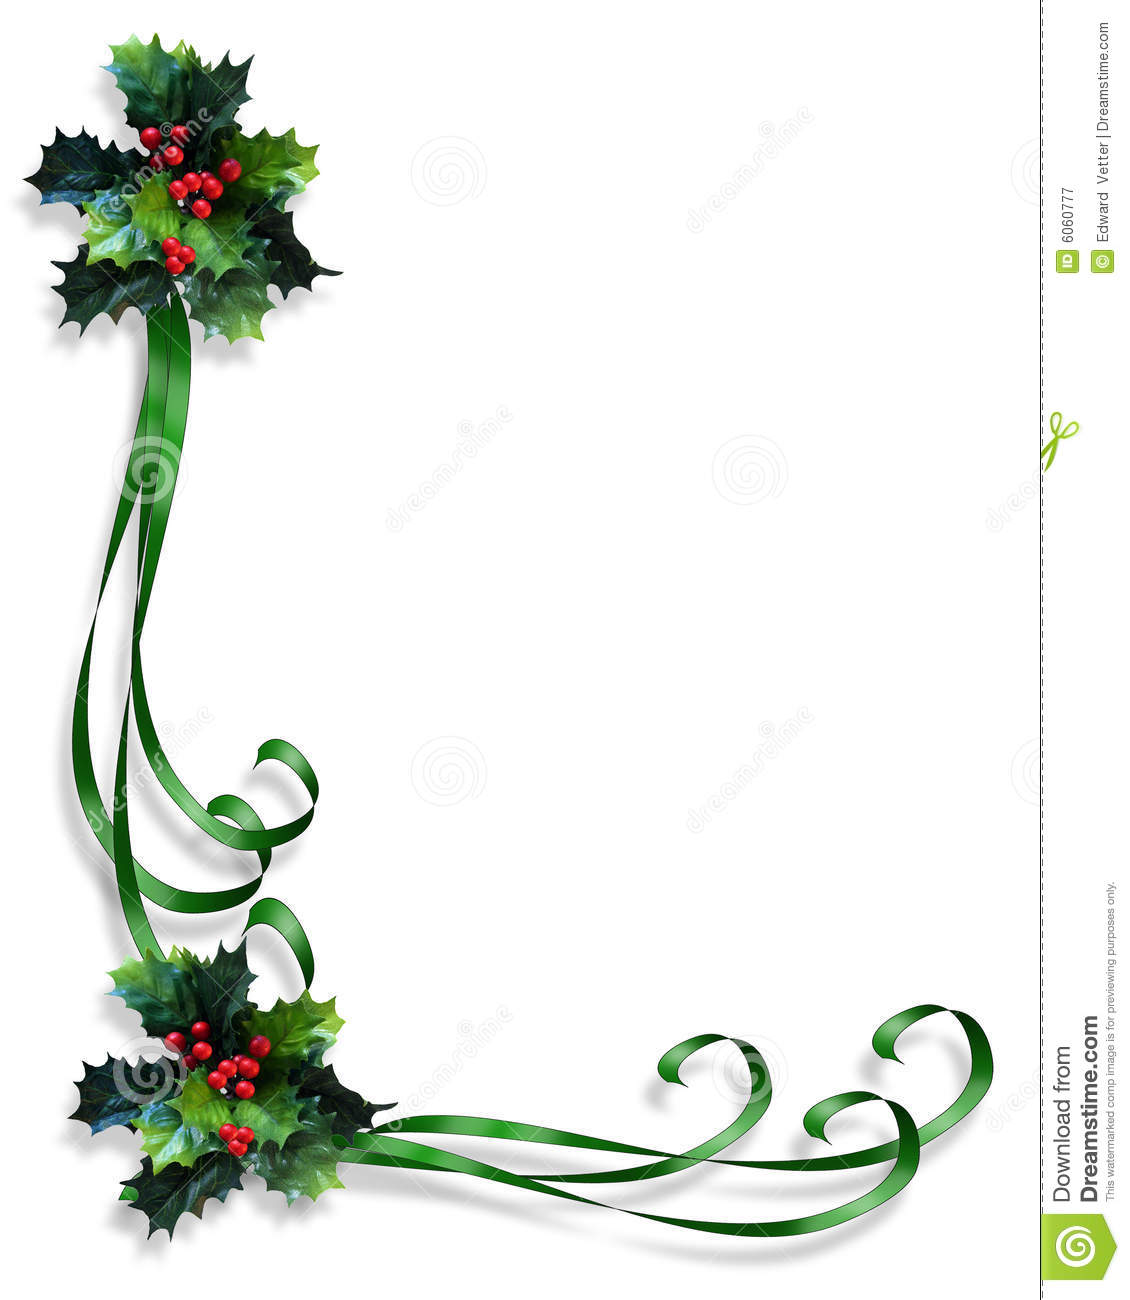 Christmas Border Holly And Ribbons Stock Illustration - Illustration ...